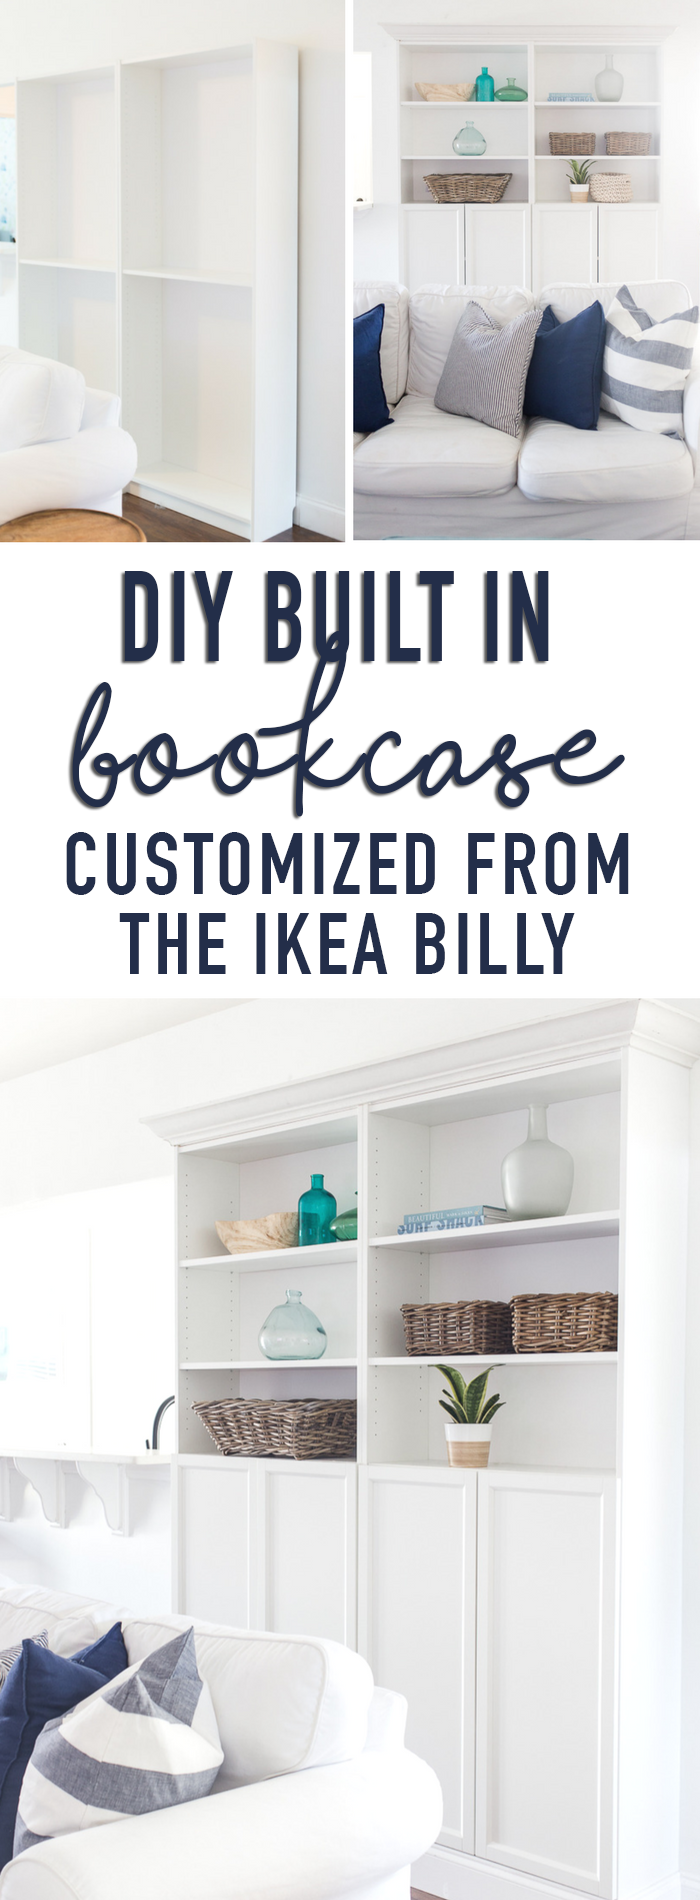 DIY Built In Bookcases customized from the IKEA Billy Bookcase